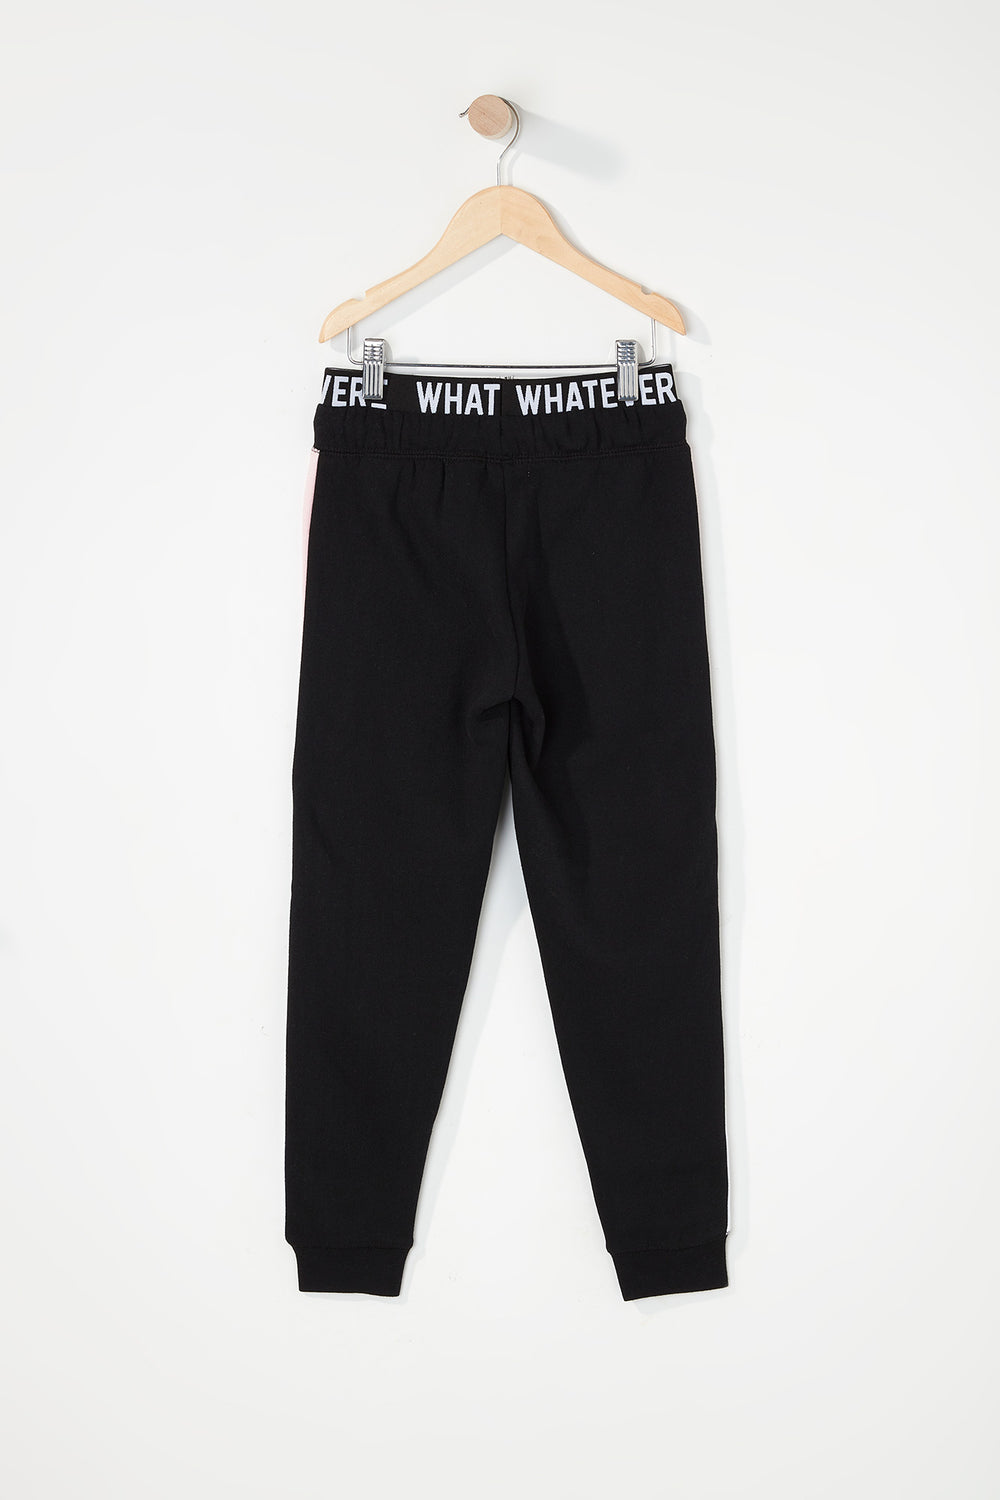 Girls Colour Block Graphic Band Jogger Black